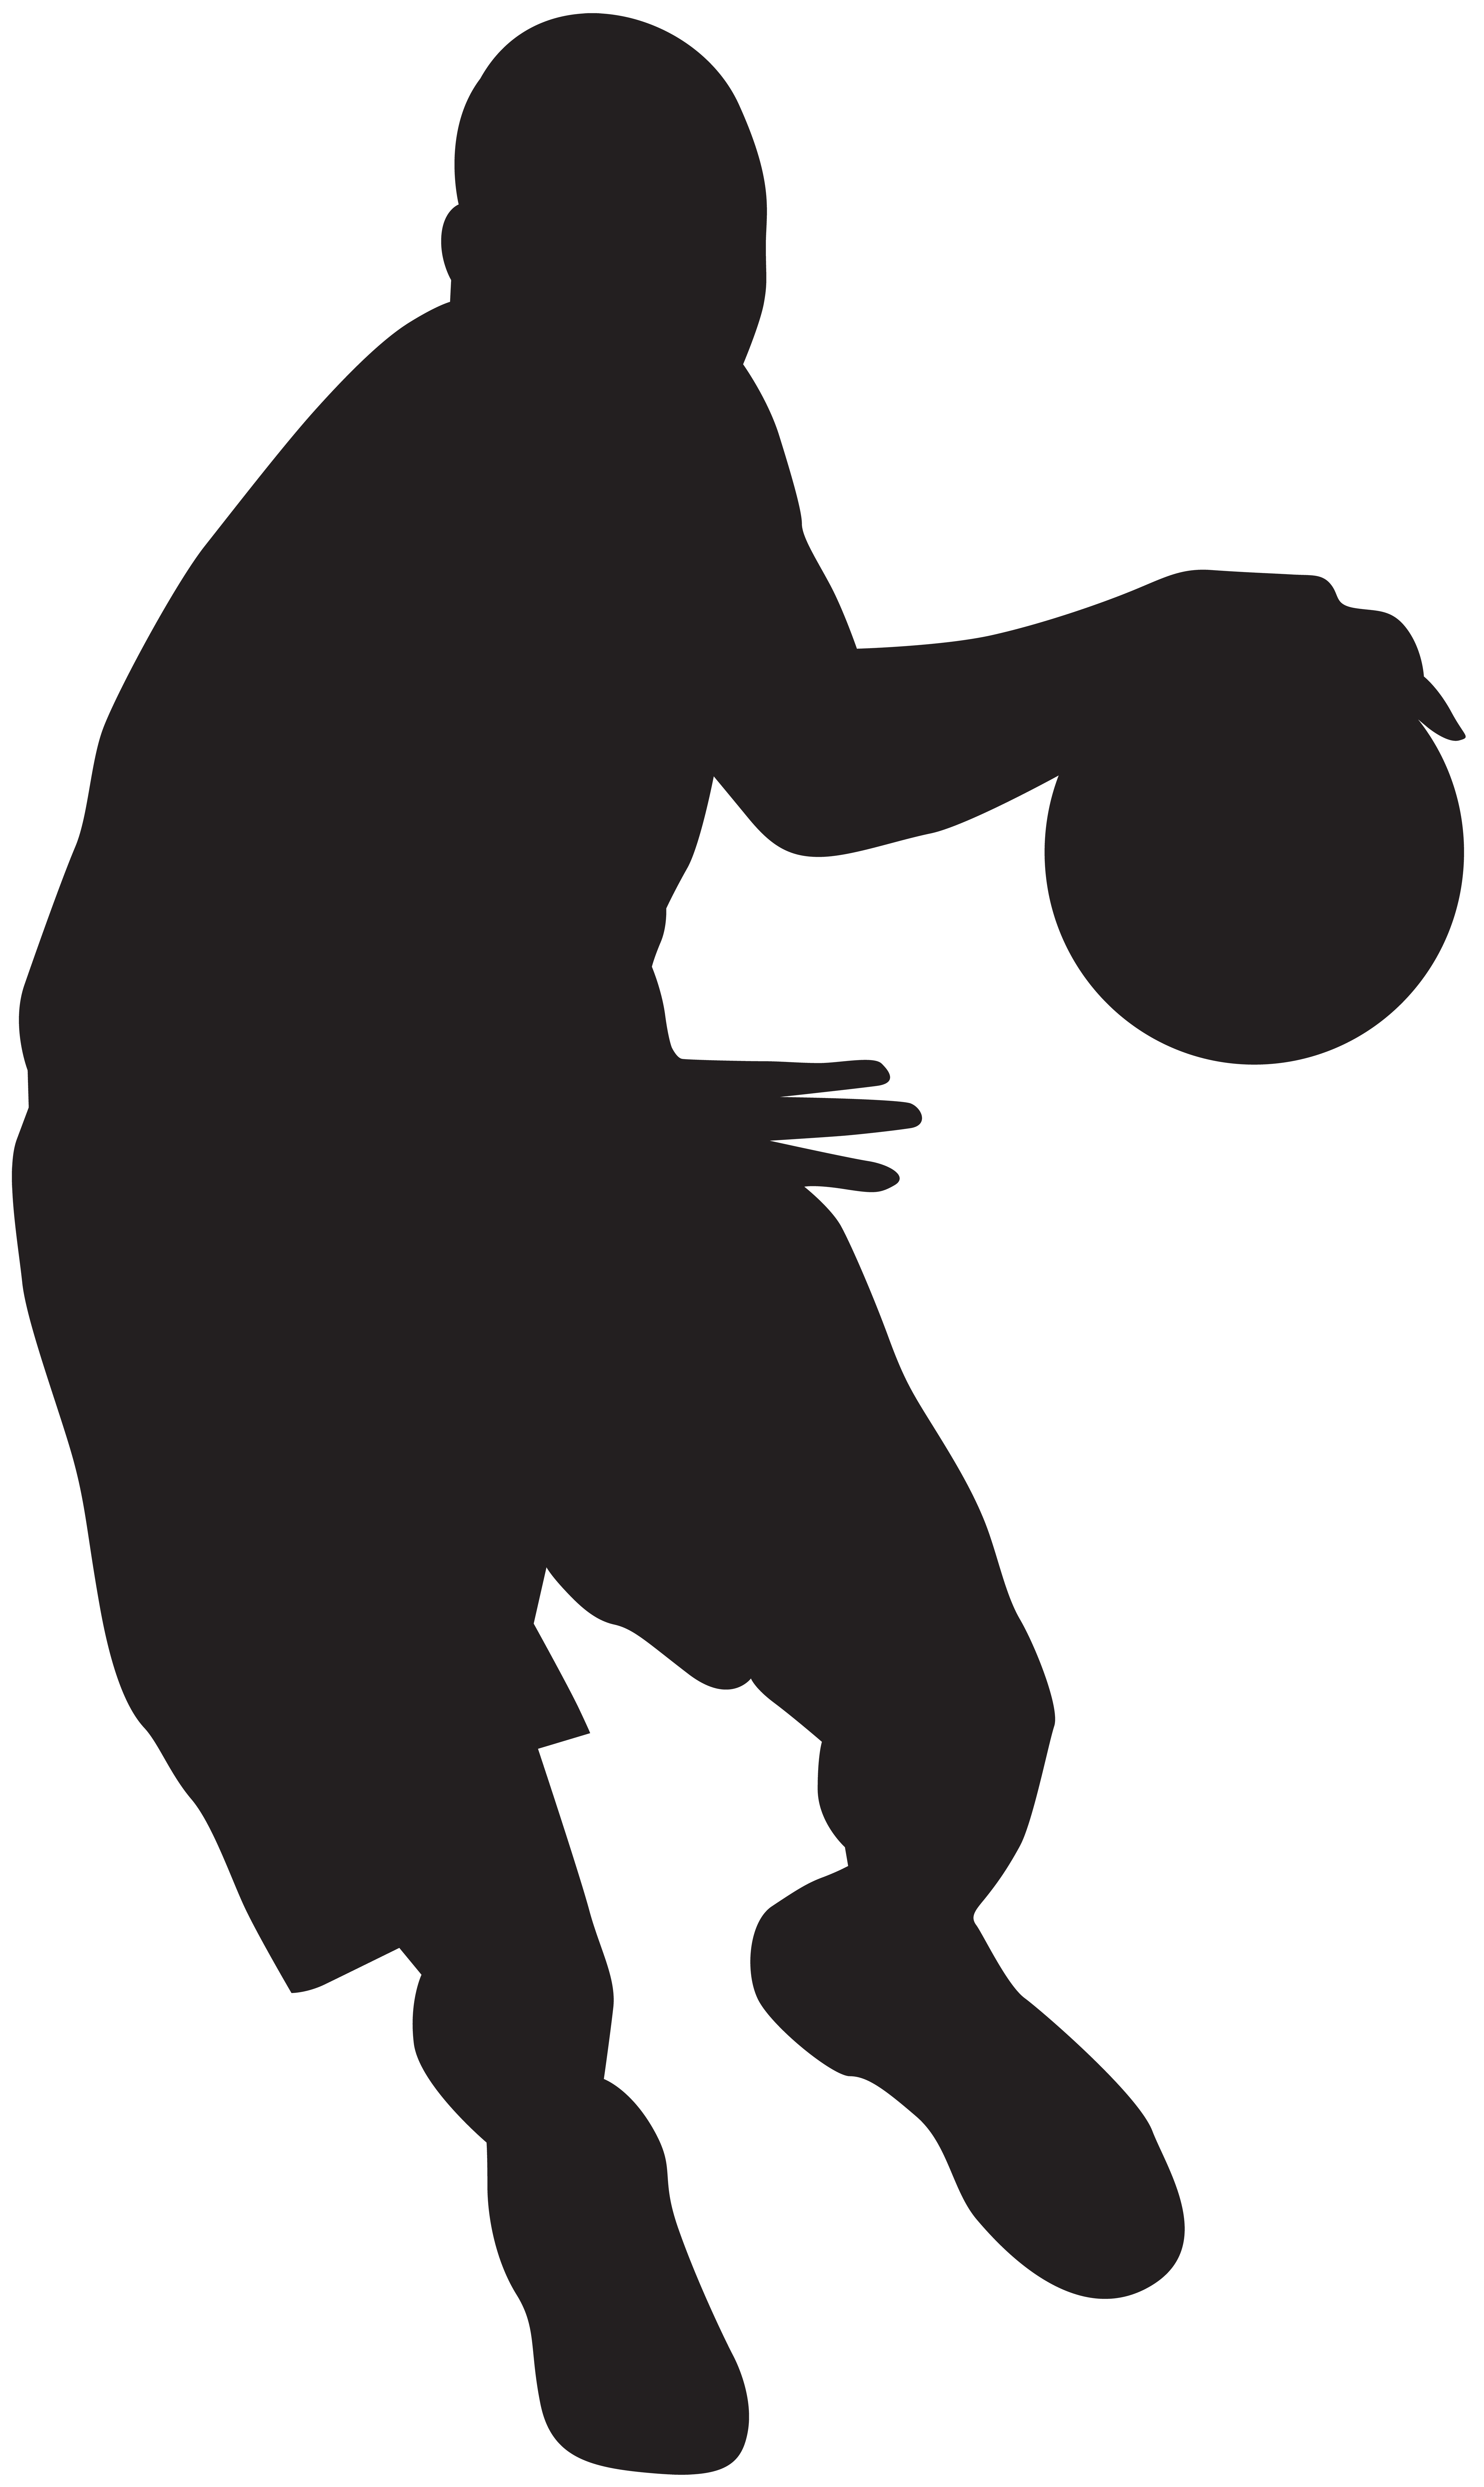 Basketball Silhouette Clip Art at GetDrawings com | Free for